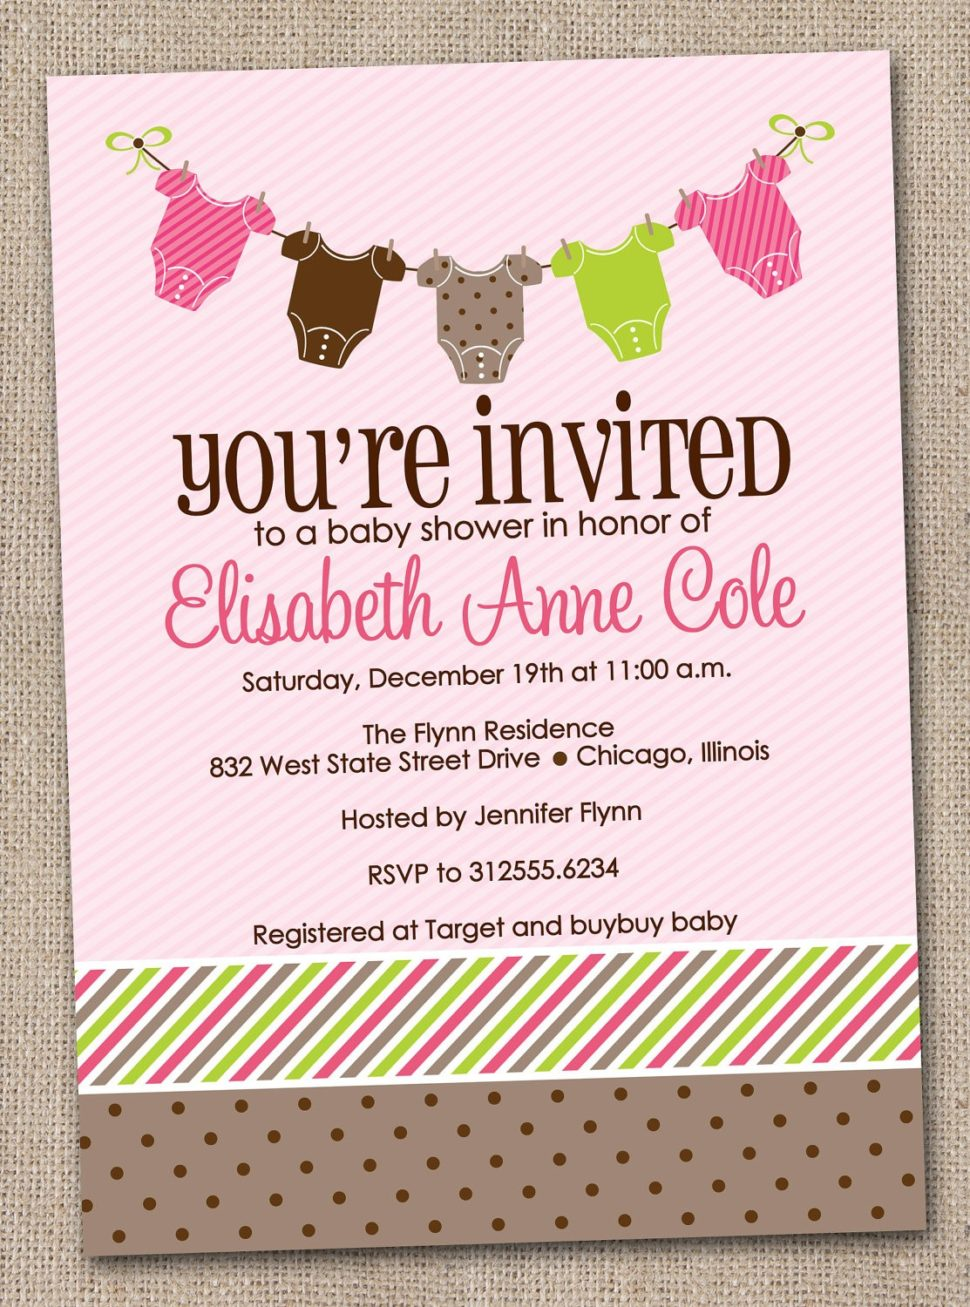 Medium Size of Baby Shower:graceful Baby Shower Cards Image Designs Baby Shower Games With Owl Baby Shower Invitations Plus Baby Shower Quilt Together With Couples Baby Shower As Well As Baby Shower Products